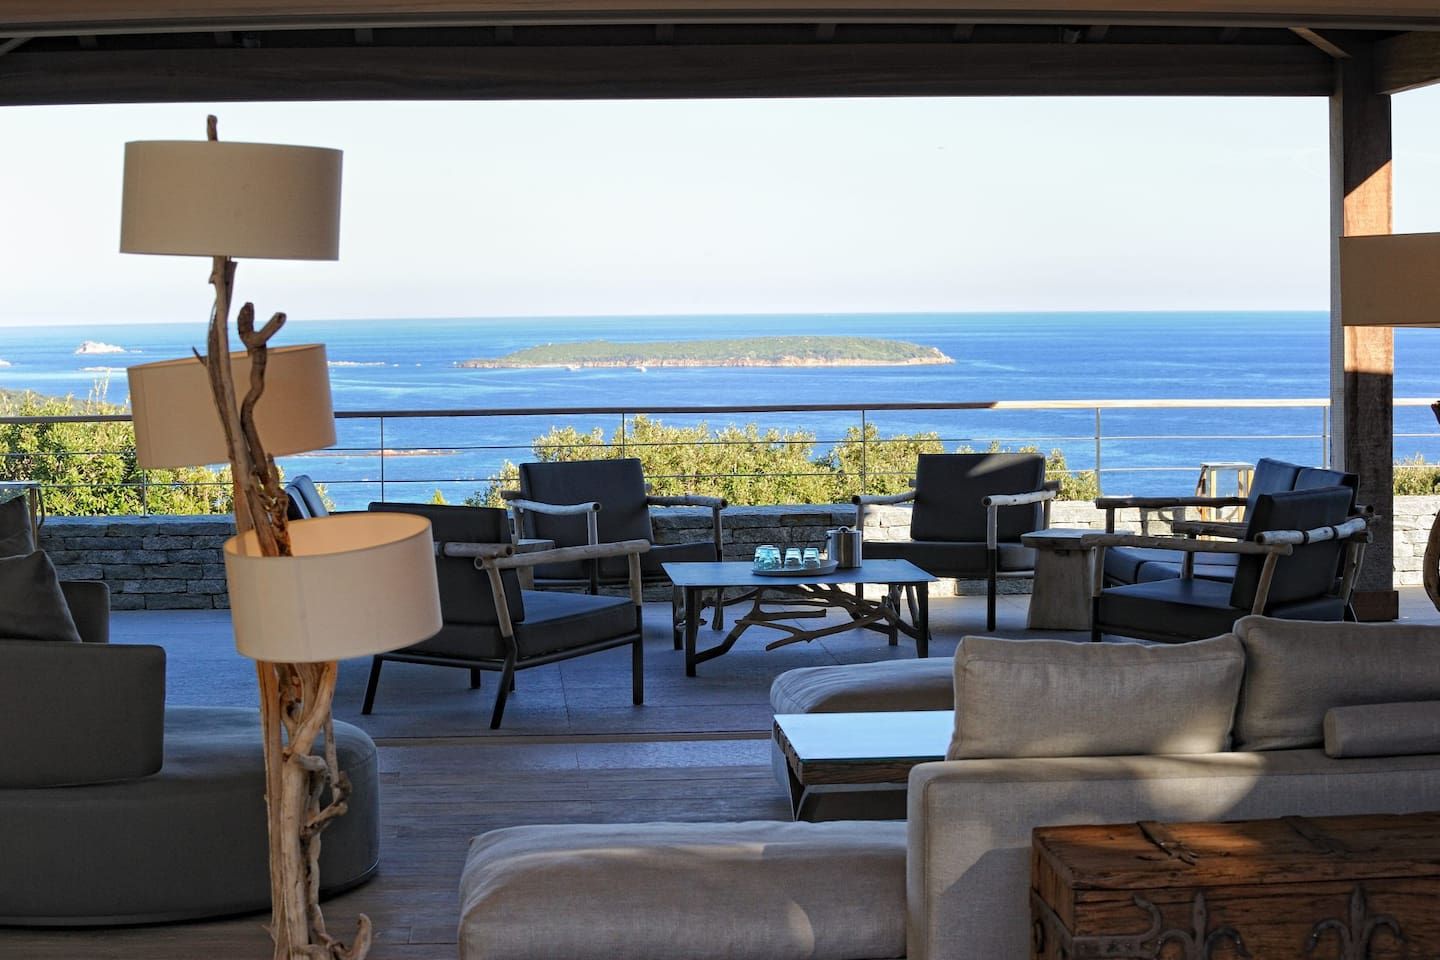 180° sea view, overlooking Palombaggia beach, cerbicales islands on the front.